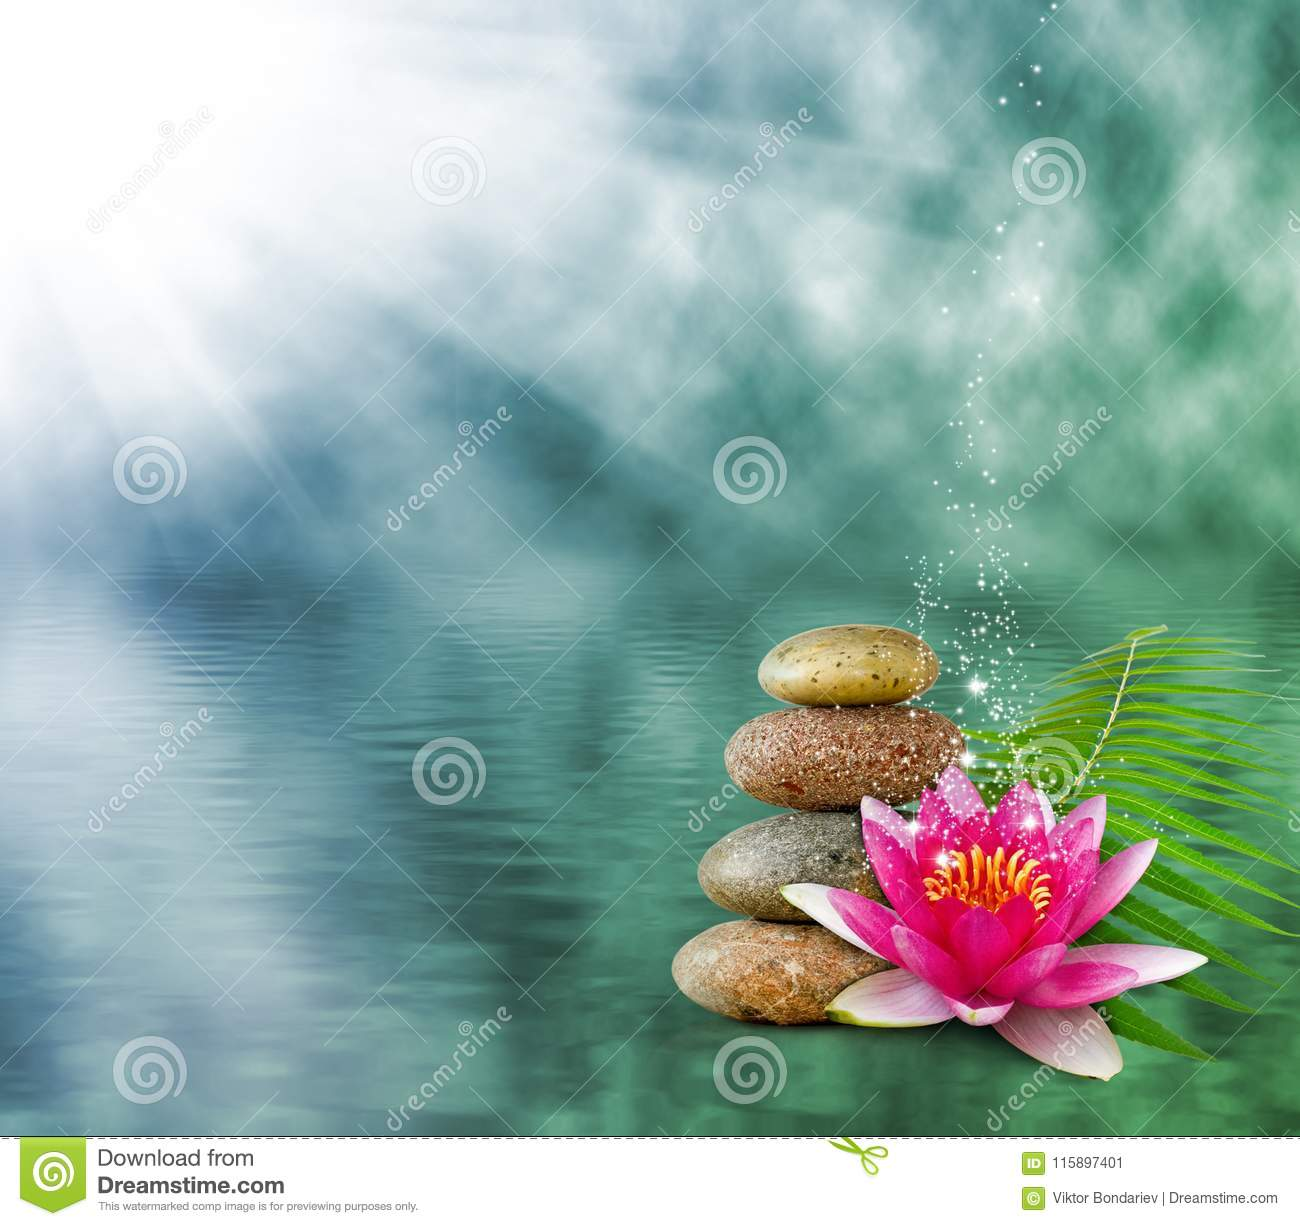 Lotus Flower On Water Background Stock Image Image Of Order Ocean